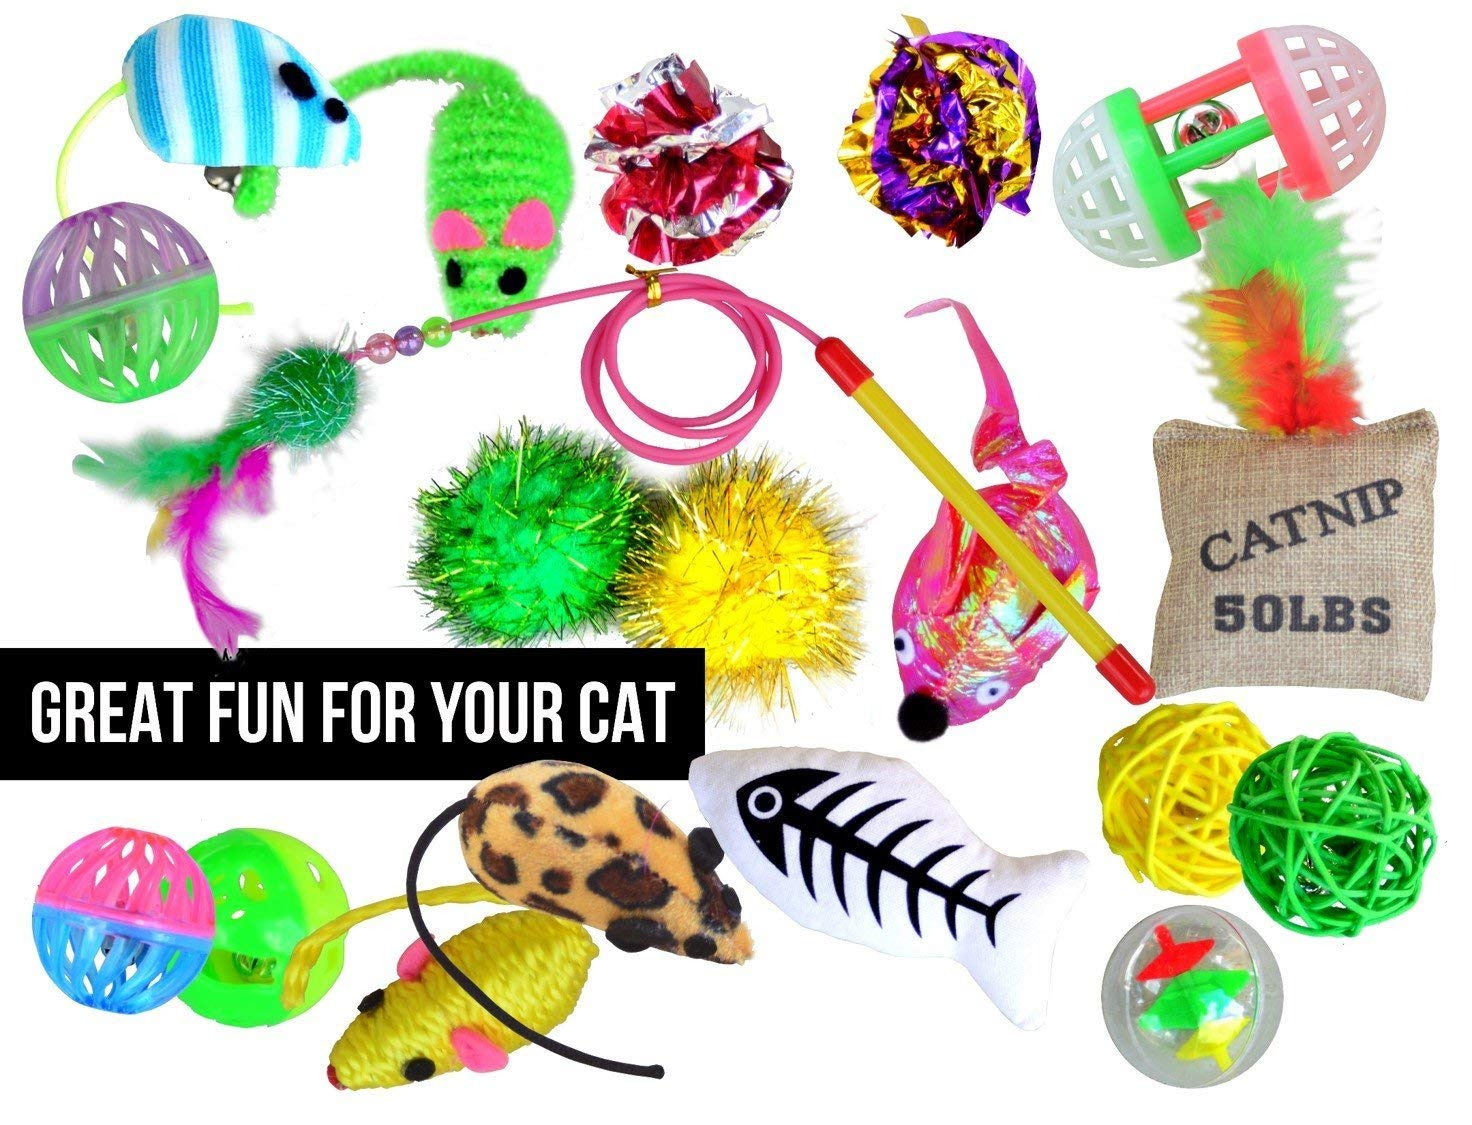 Interactive Cat Toys Variety Pack 20 Piece Popular Assortment to Keep Your Pet Feline Occupied for Hours   Includes Balls, Bells, Mice, Fish Catnip Cushion, Teaser and More